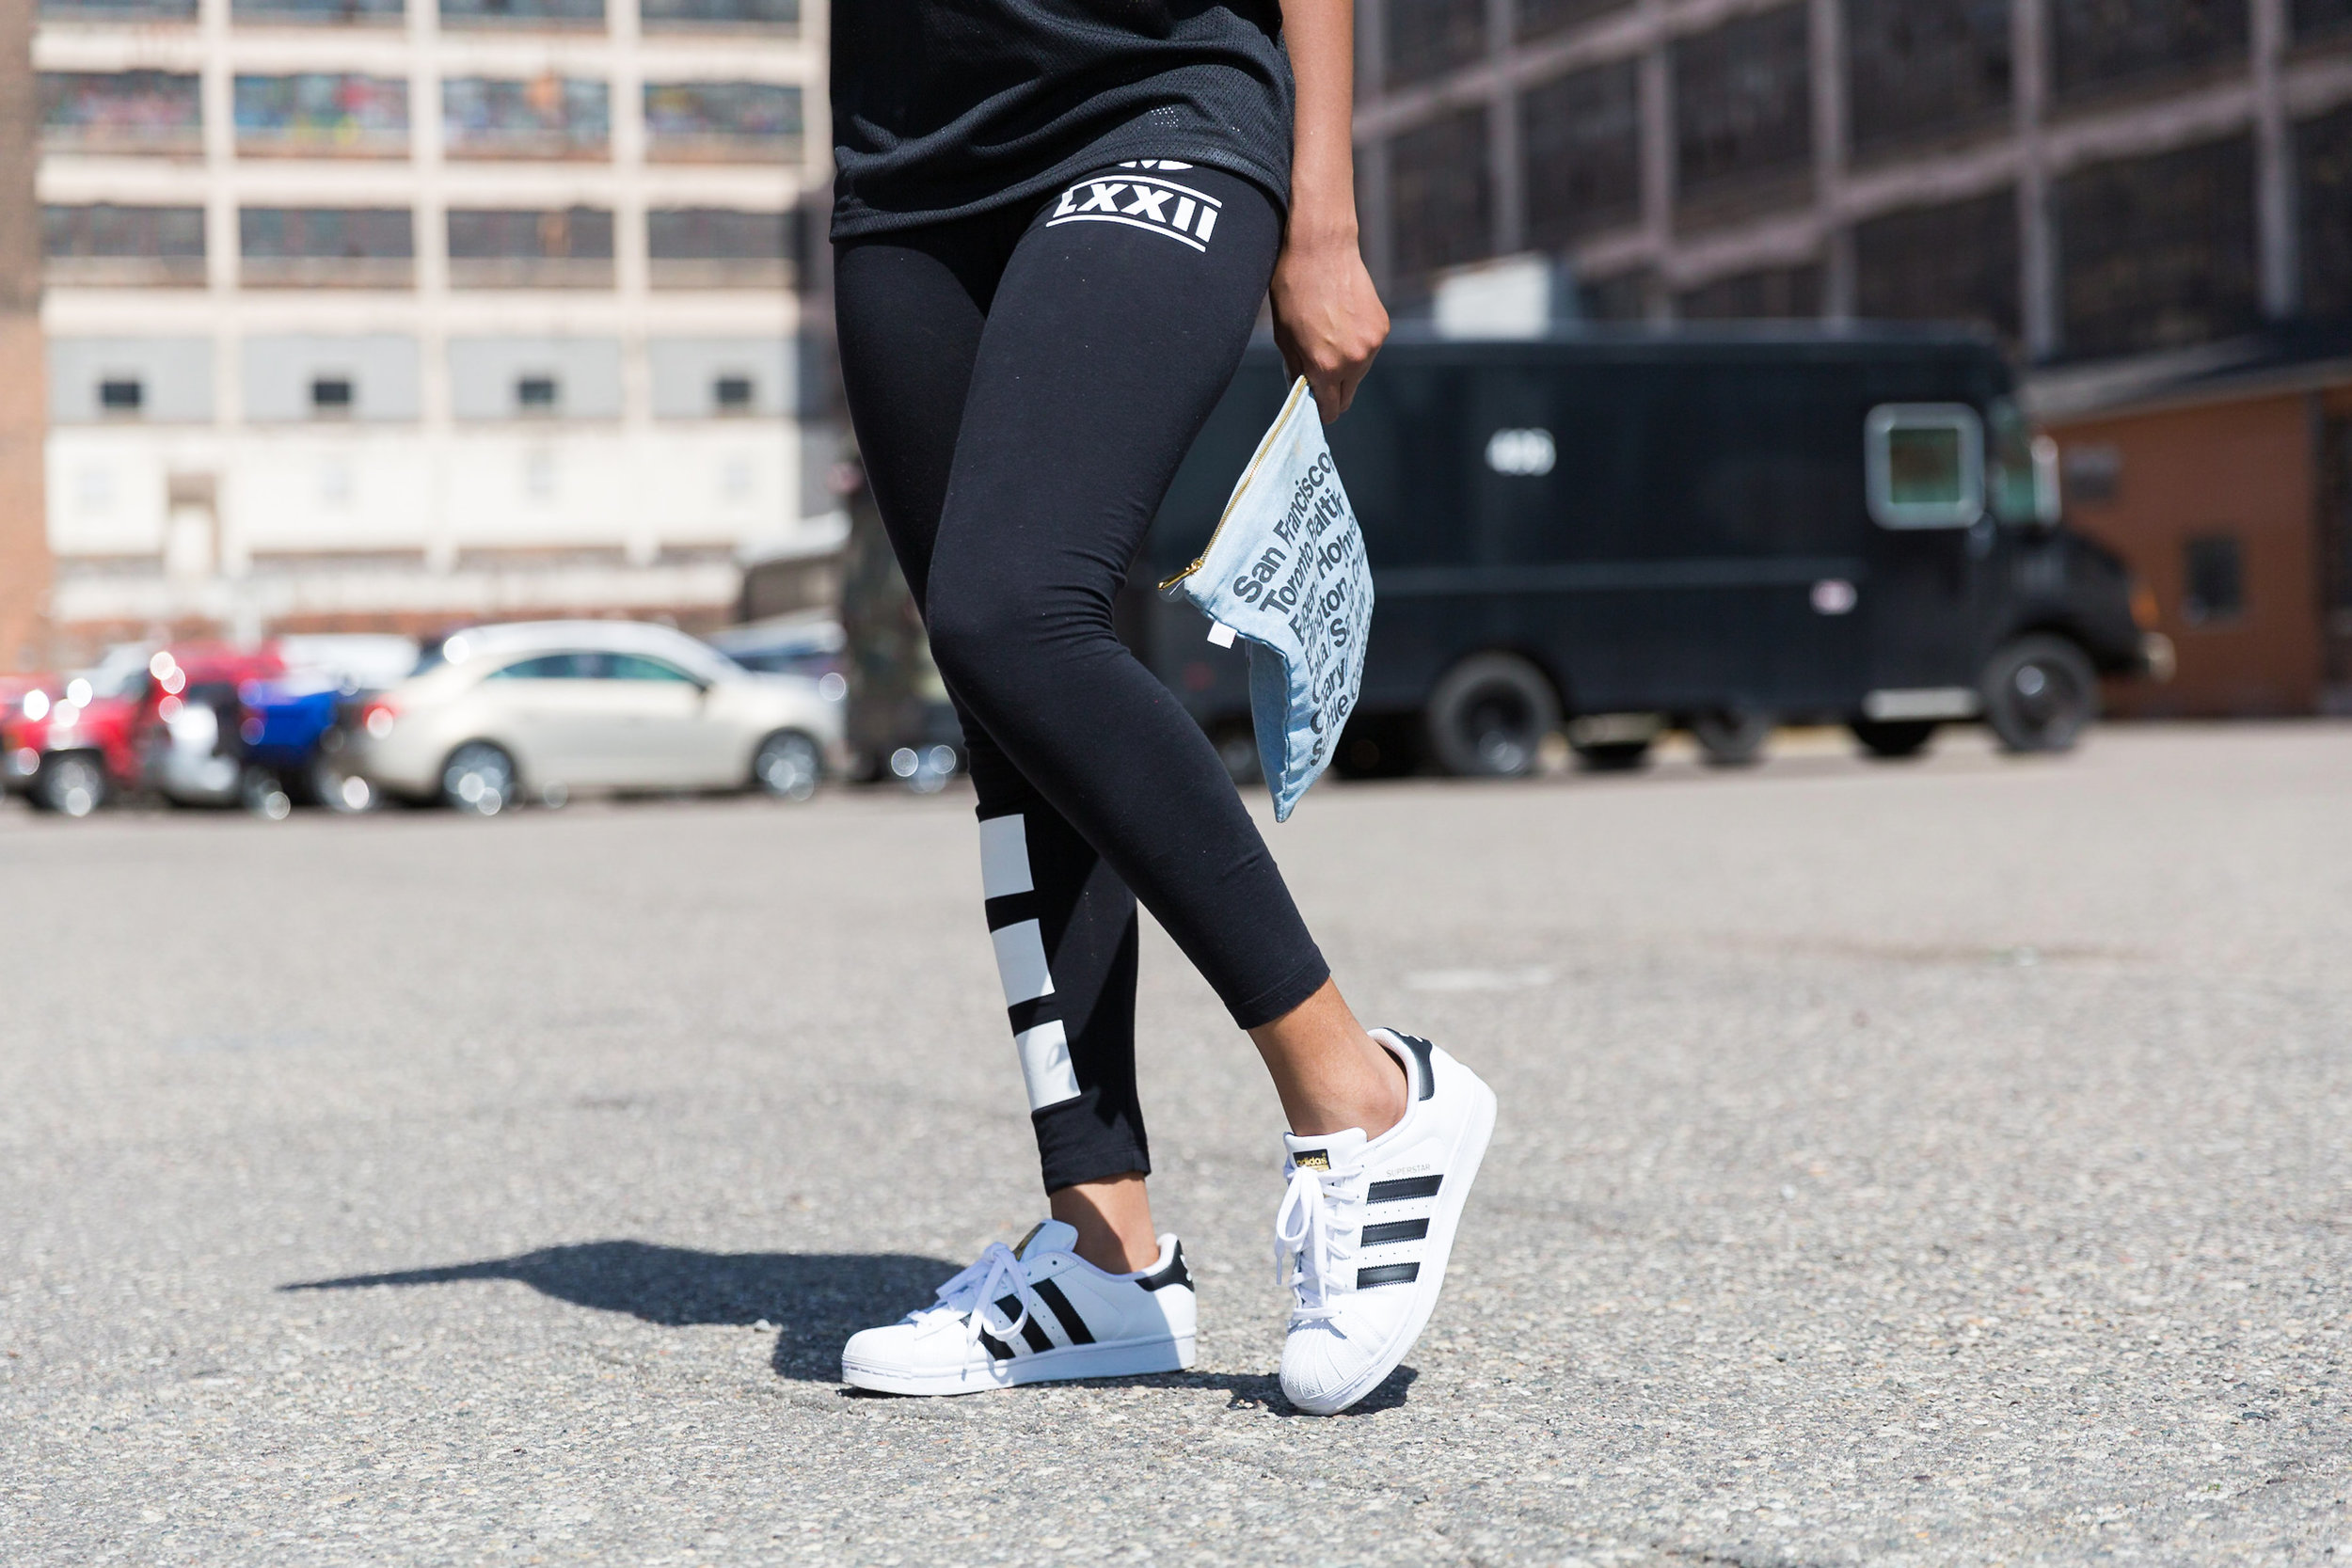 I had my eyes on the Adidas Superstar Shell Toe Shoes and when I received them as a gift, I had to find a dope outfit to go with it!